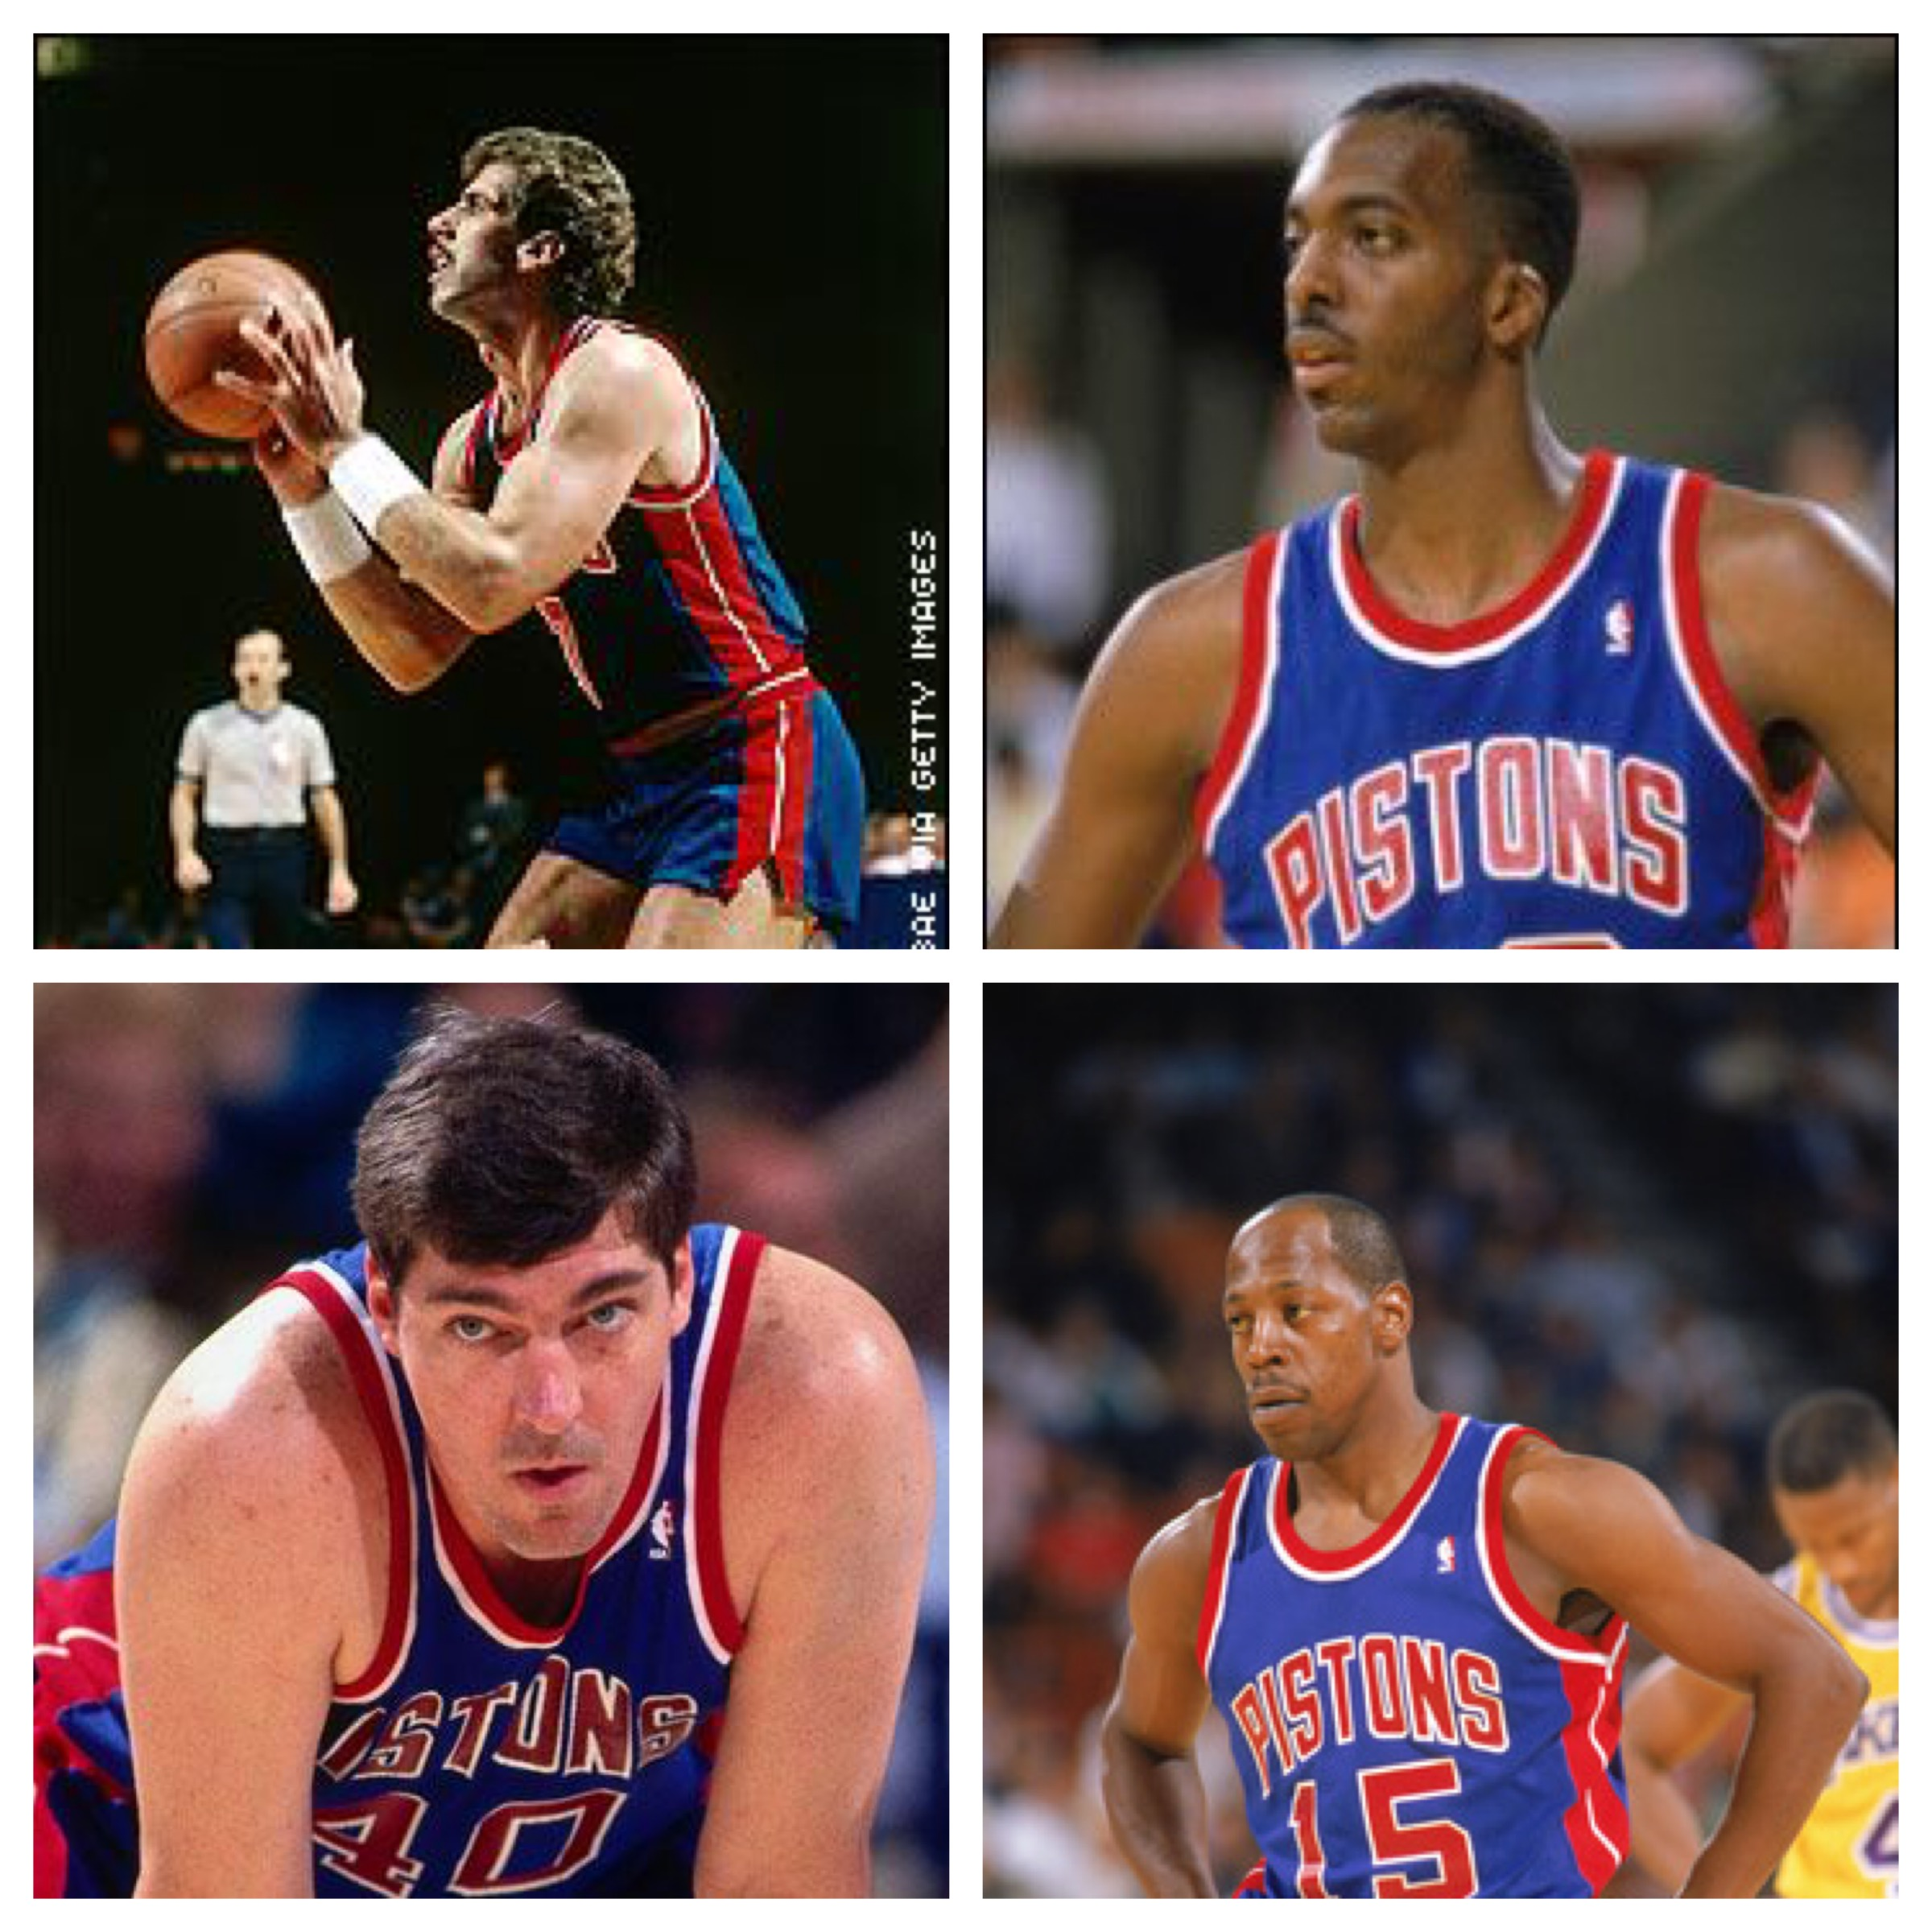 Playing the What If Game Moses Malone Gets Traded to the Pistons